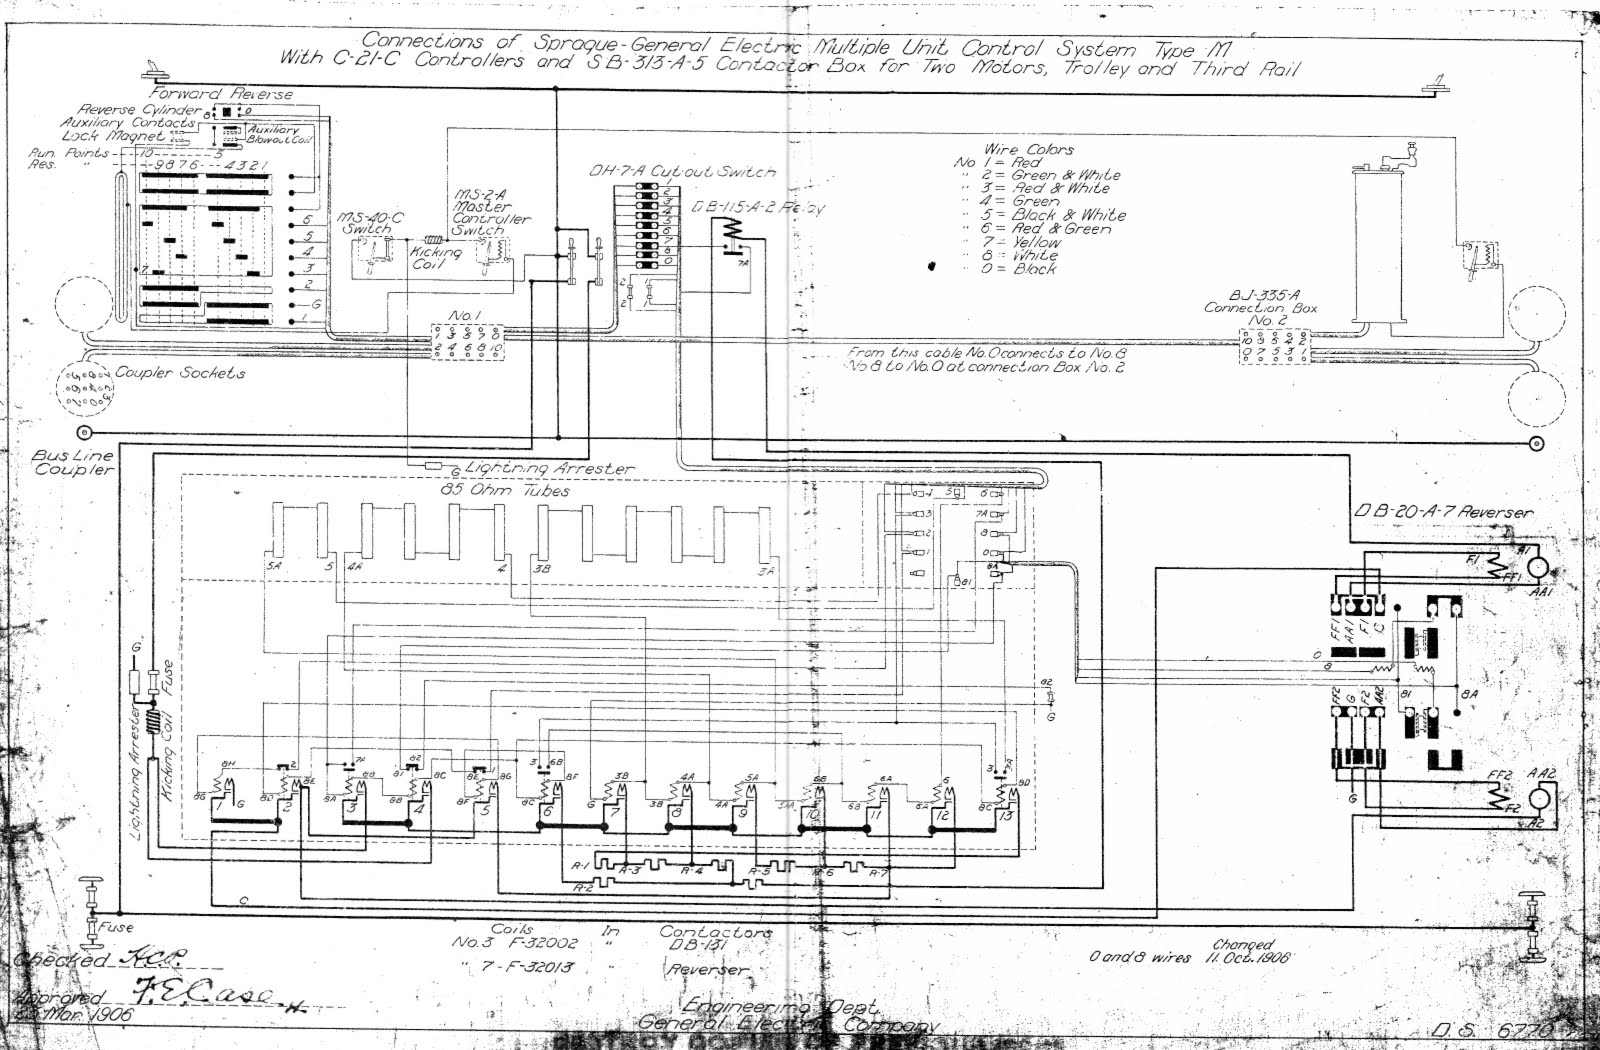 97 honda prelude wiring diagram 97 ford expedition wiring